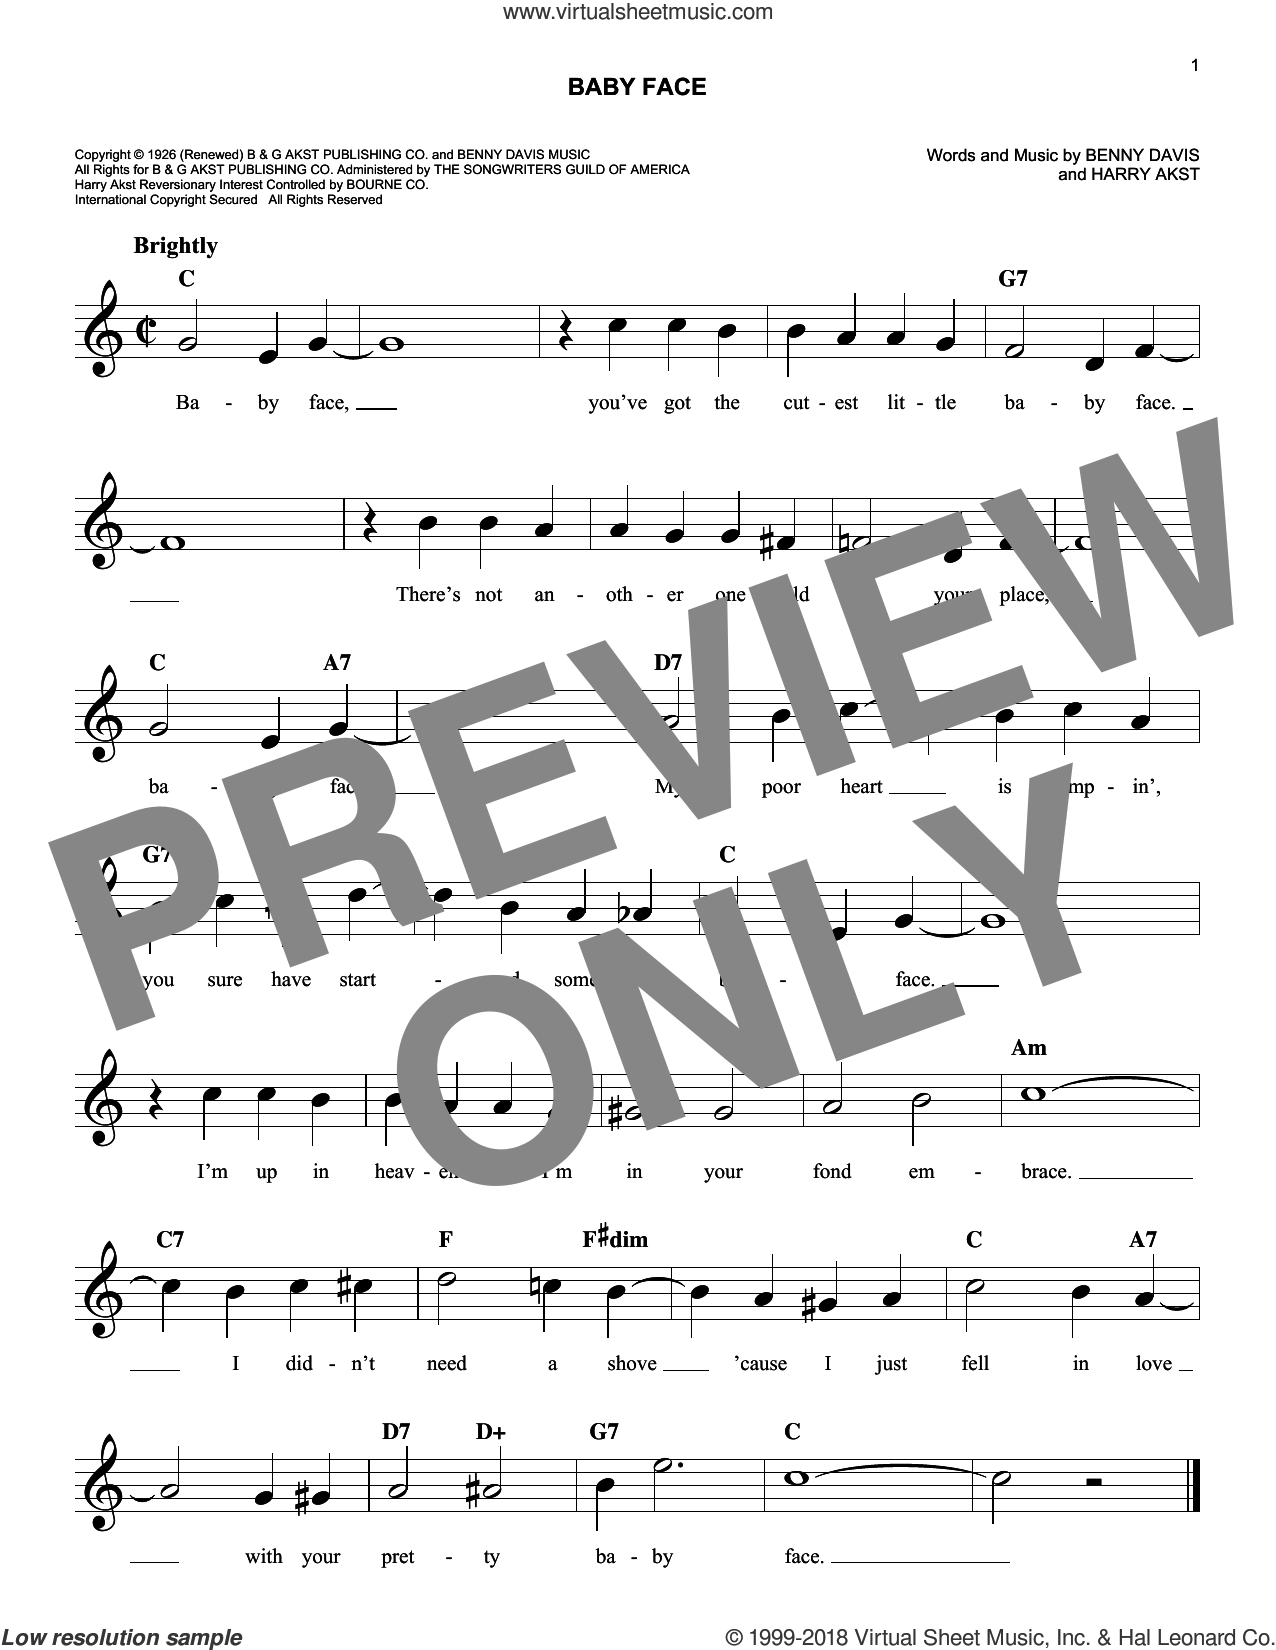 Baby Face sheet music for voice and other instruments (fake book) by Bobby Darin, Benny Davis and Harry Akst, intermediate skill level